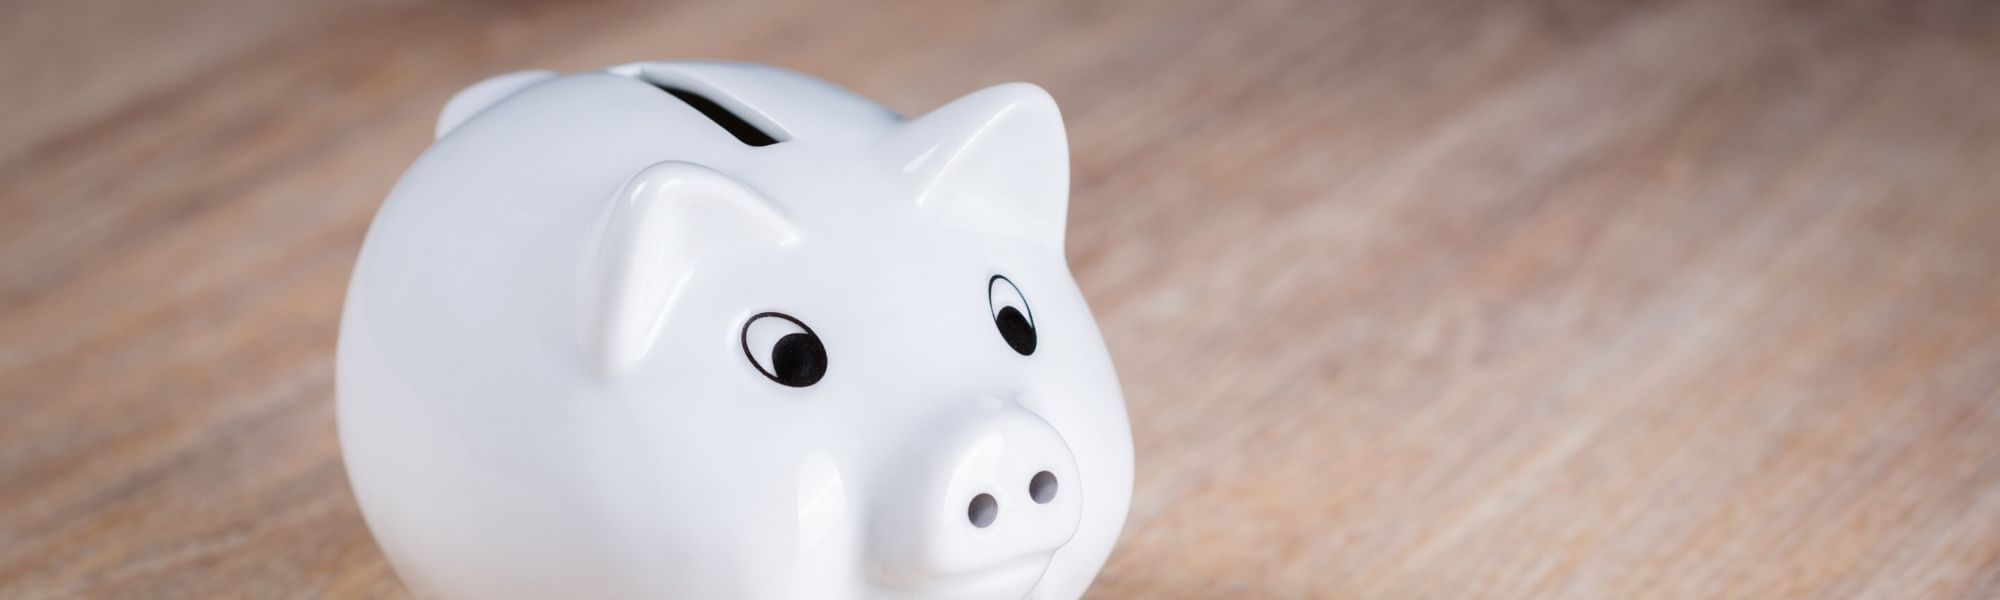 THE MILLENNIAL'S GUIDE TO BUDGETING: HOW TO MANAGE YOUR MONEY LIKE A GROWN-UP